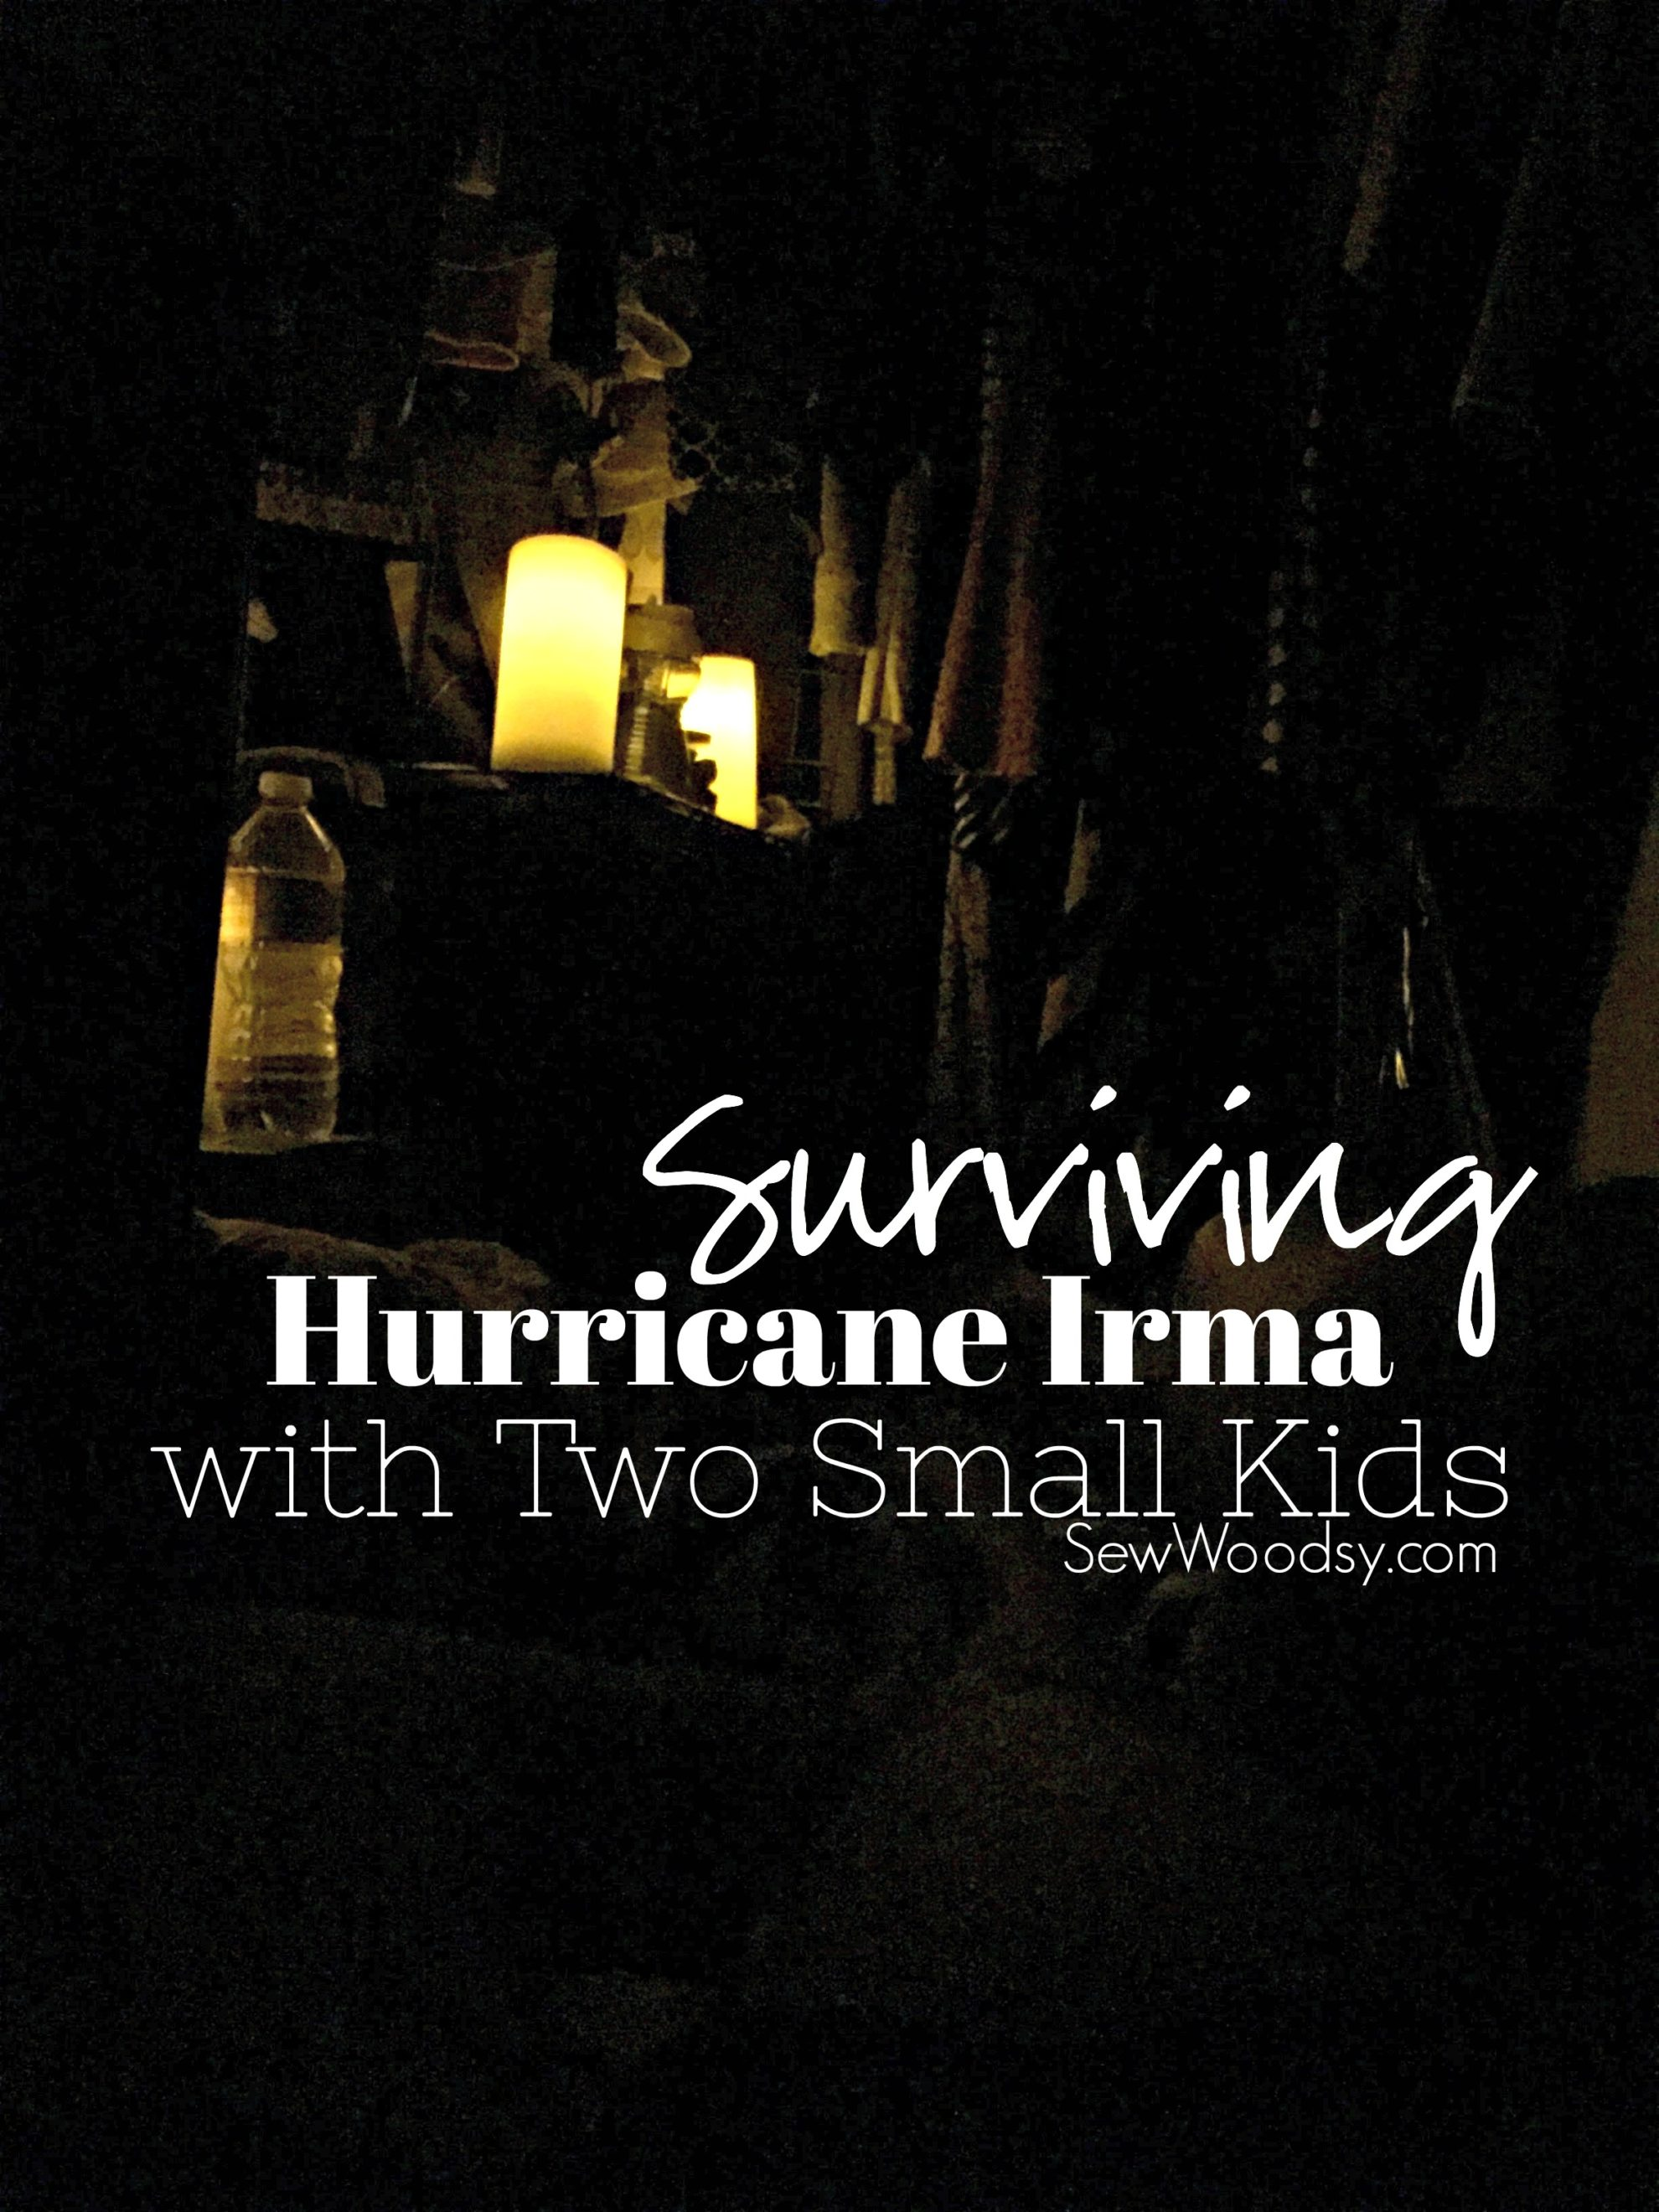 Surviving Hurricane Irma with Two Small Kids